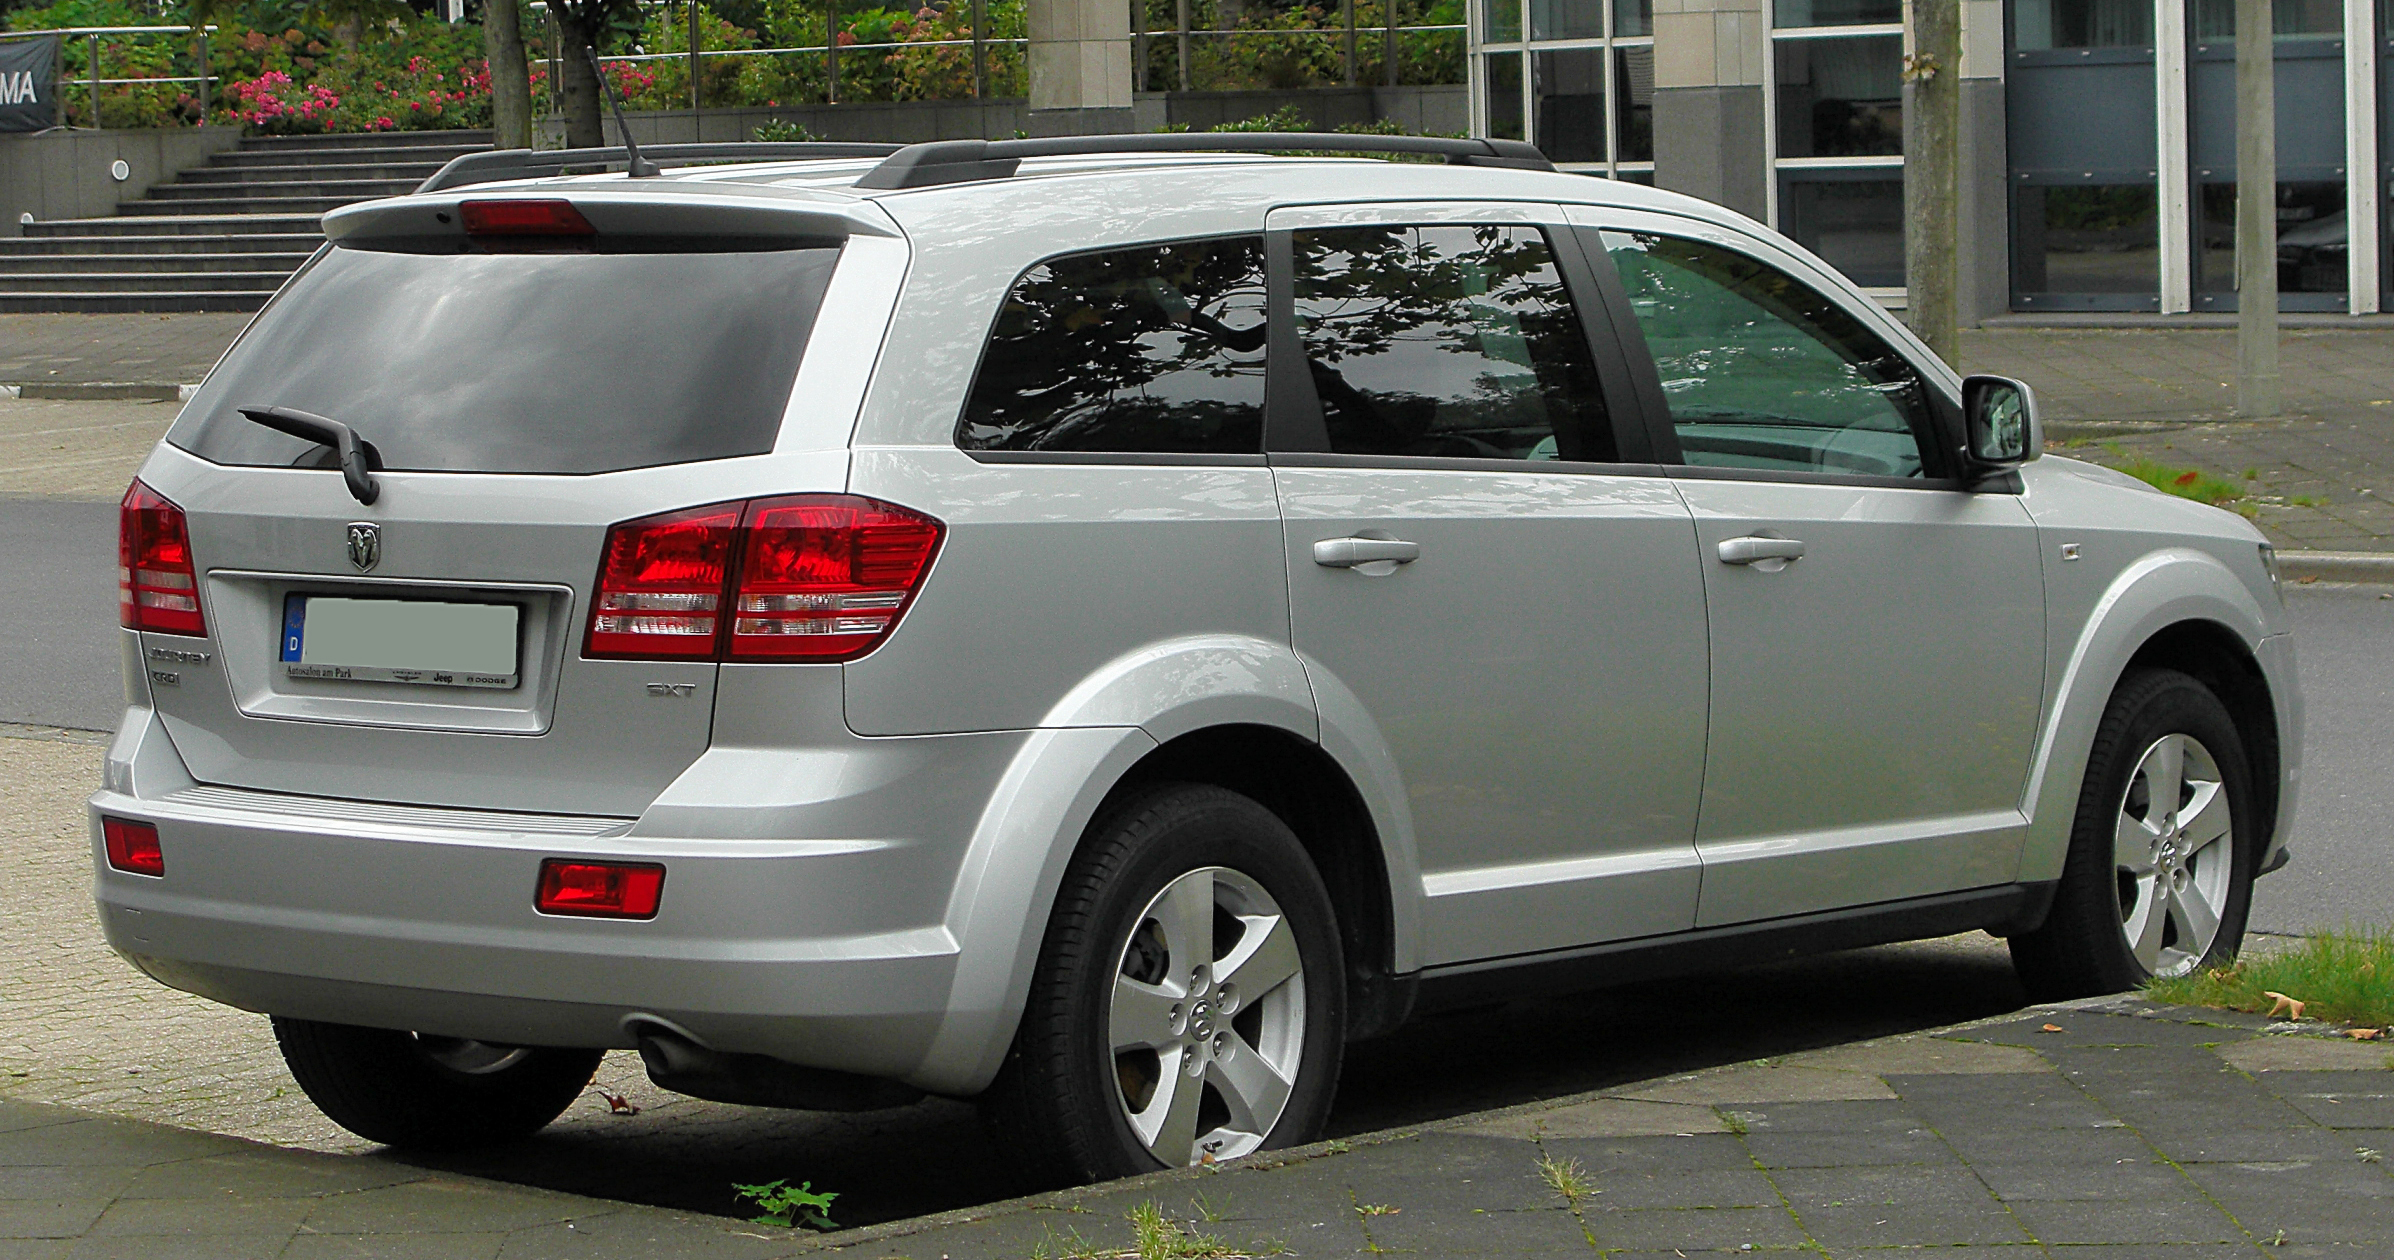 file dodge journey rear wikimedia commons. Black Bedroom Furniture Sets. Home Design Ideas